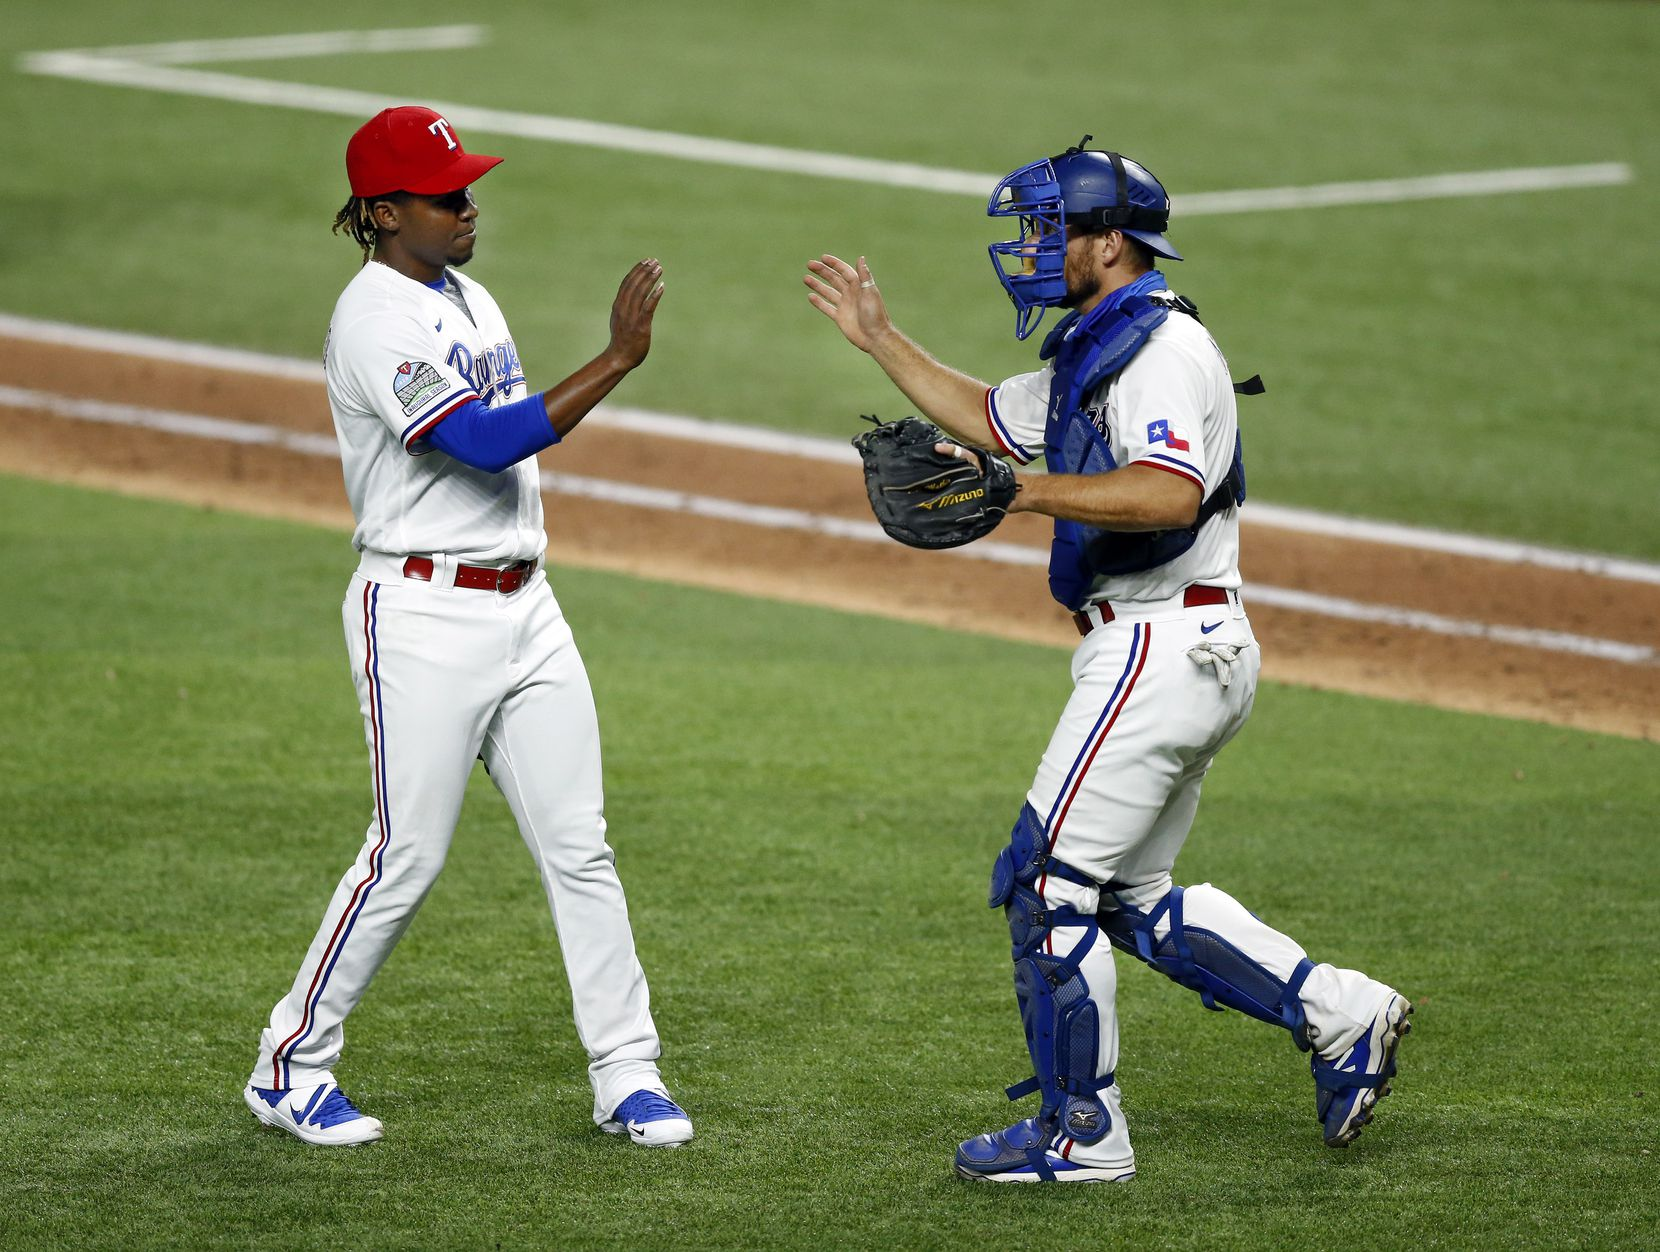 Texas Rangers relief pitcher Rafael Montero (left) is congratulated on his save by catcher Jeff Mathis after defeating the Seattle Mariners, 4-2, at Globe Life Field in Arlington, Tuesday, August 11, 2020. (Tom Fox/The Dallas Morning News)